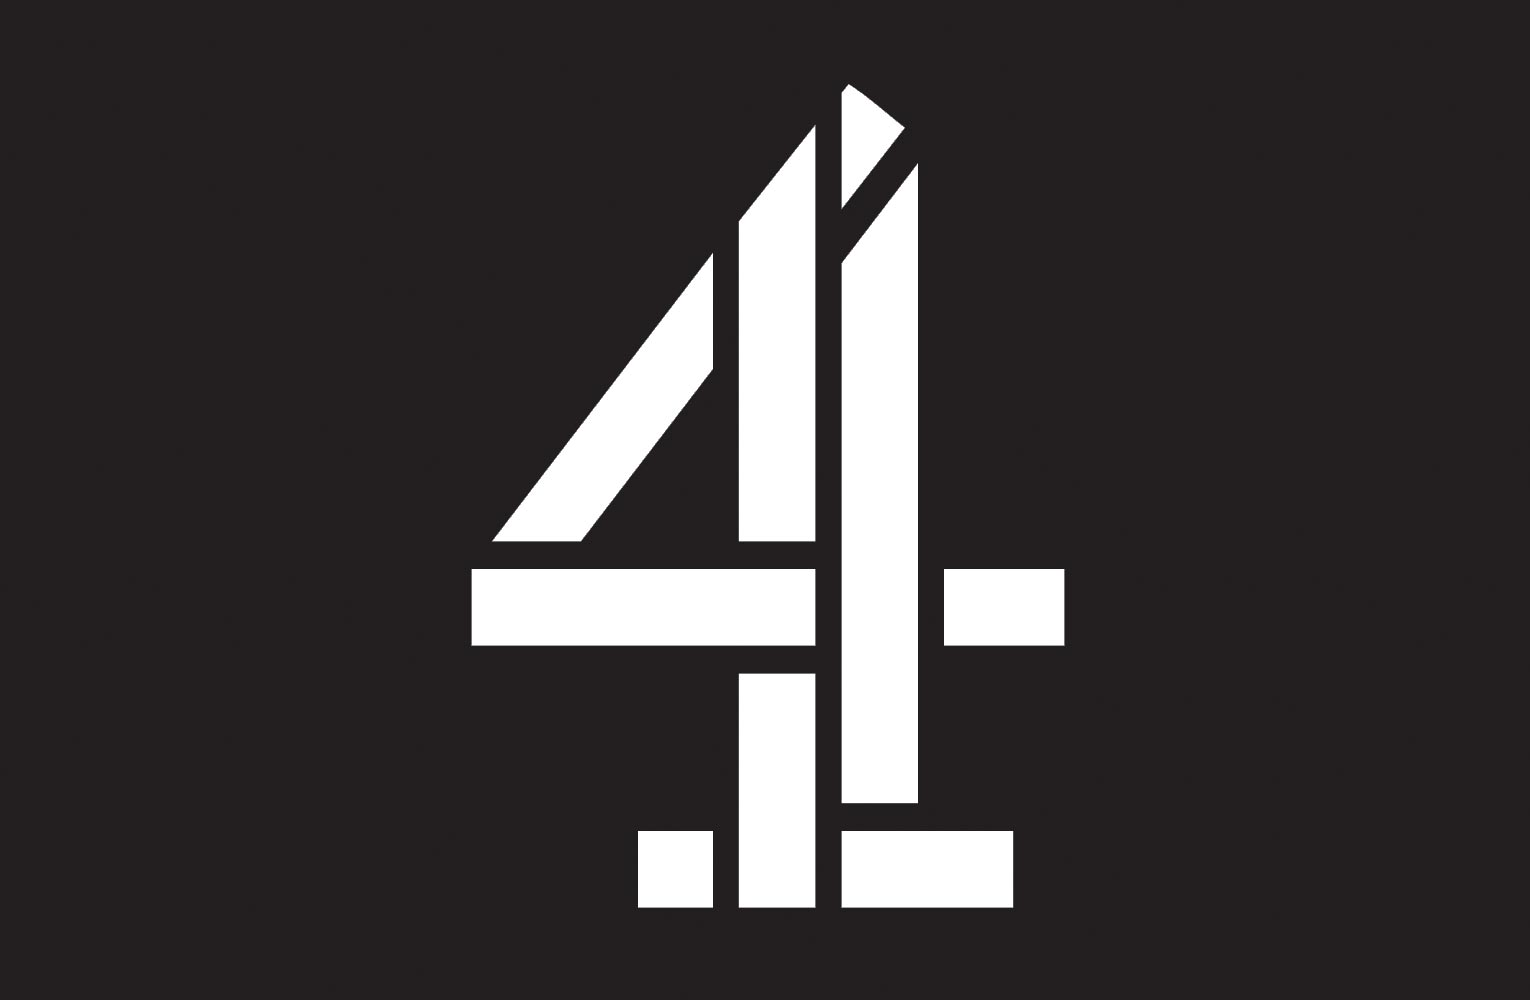 Recent graduate Libby Hobson talks, Film Buddy and her first job working on Hullraisers for Channel 4